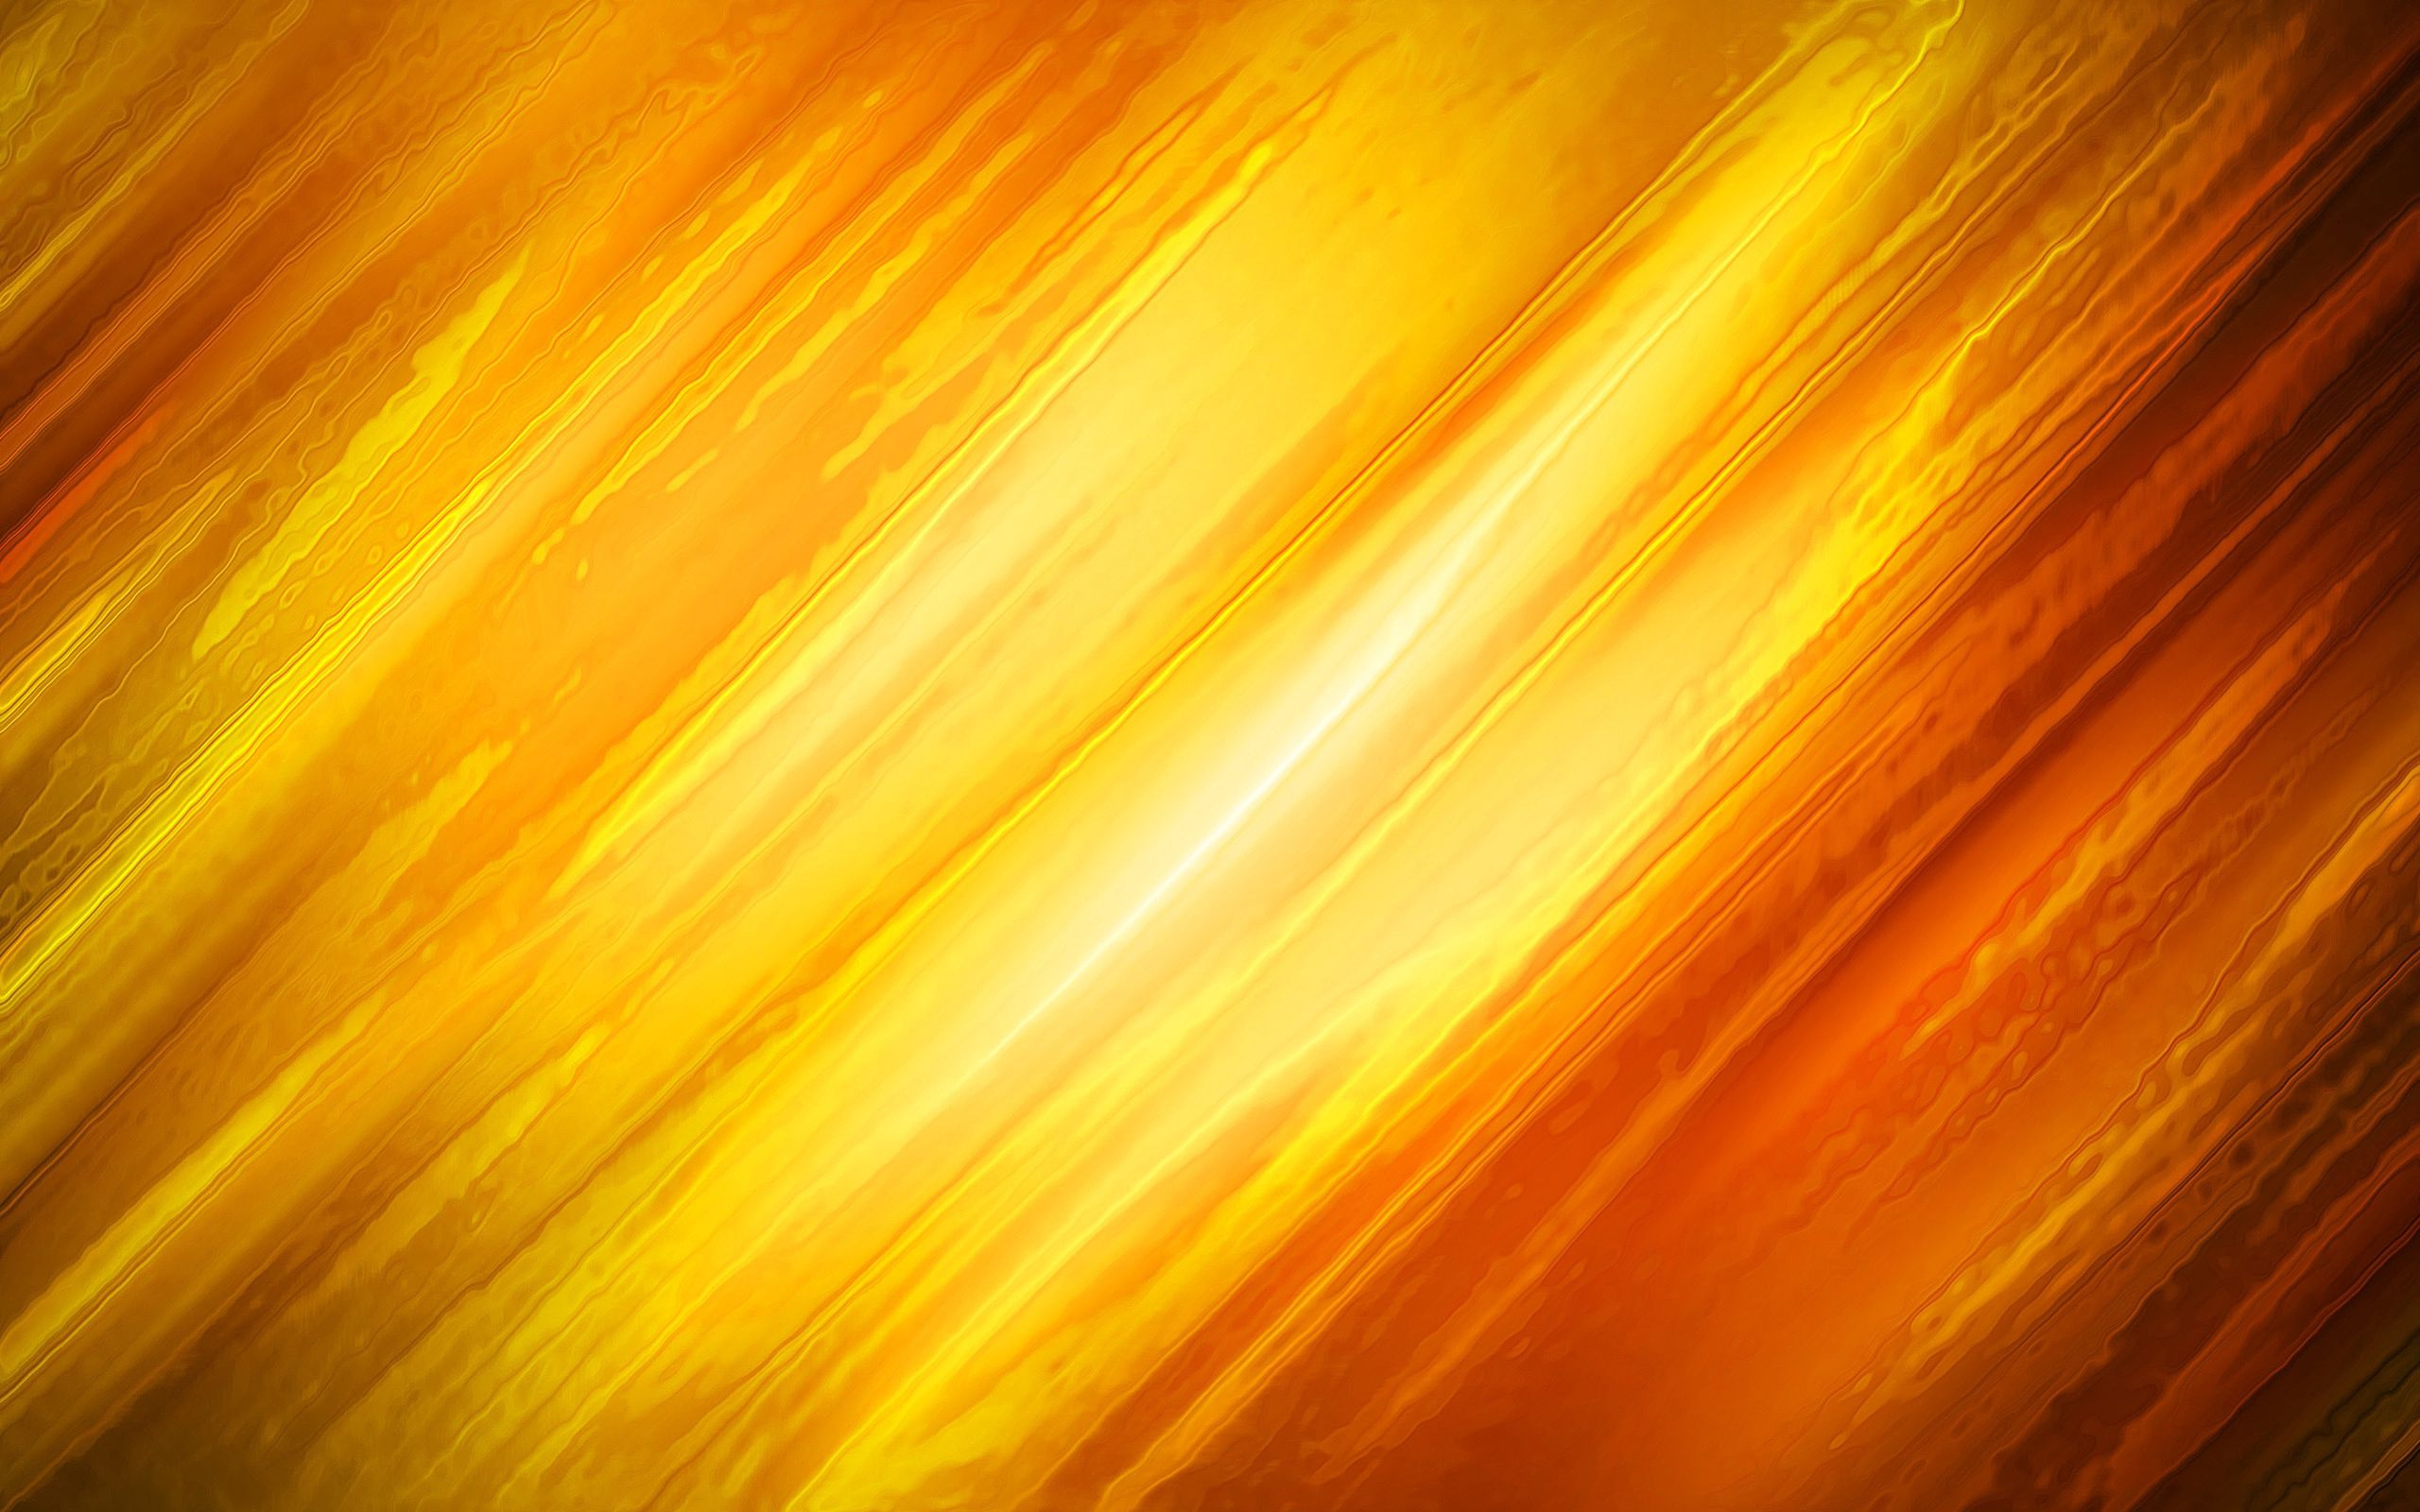 156053 download wallpaper Textures, Background, Fire, Flame, Texture, Lines, Obliquely screensavers and pictures for free